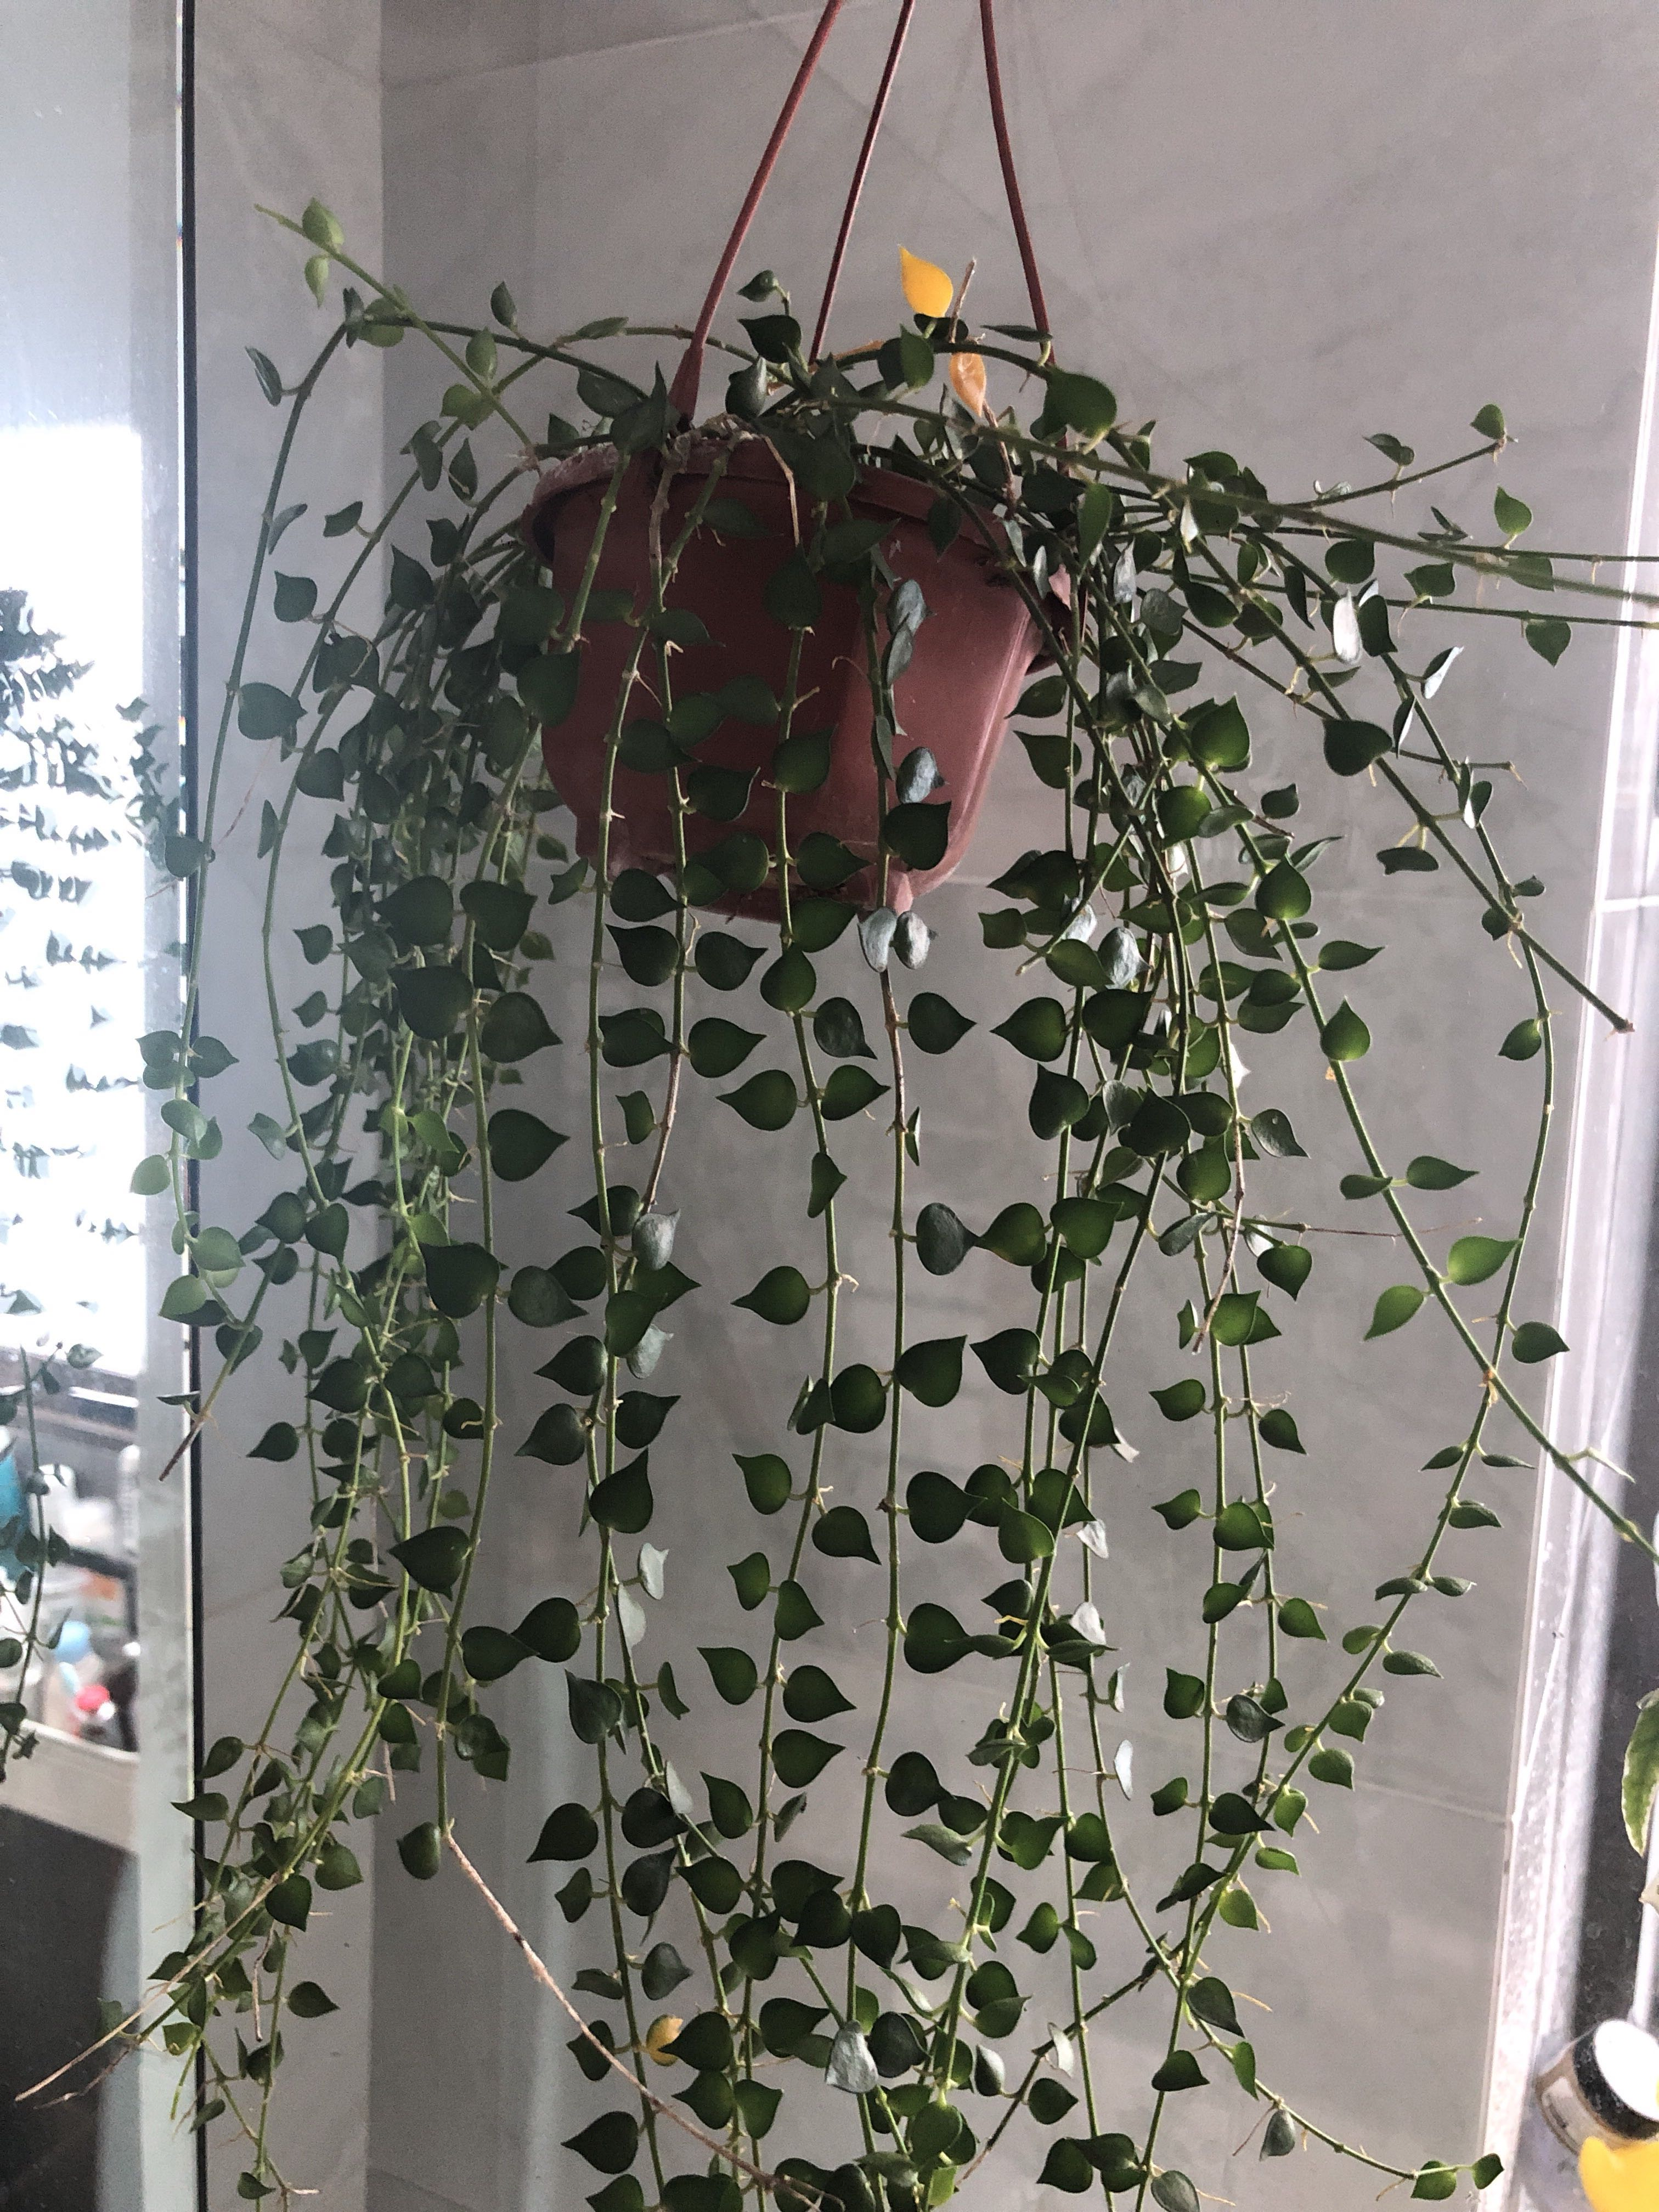 What plant is this?